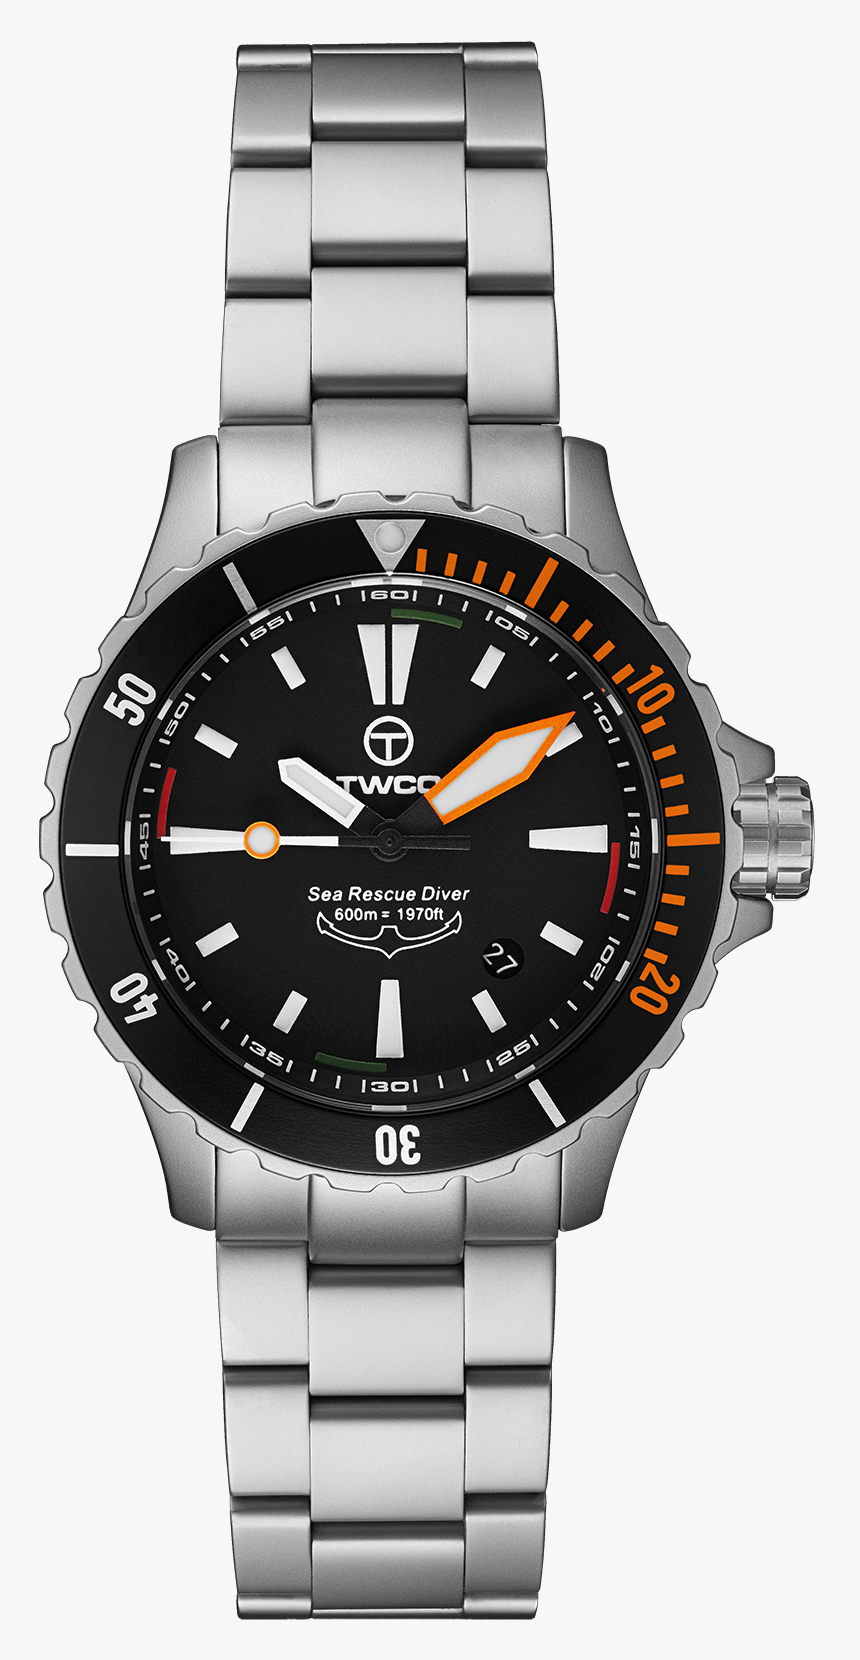 Sea Rescue Diver Watch, HD Png Download, Free Download